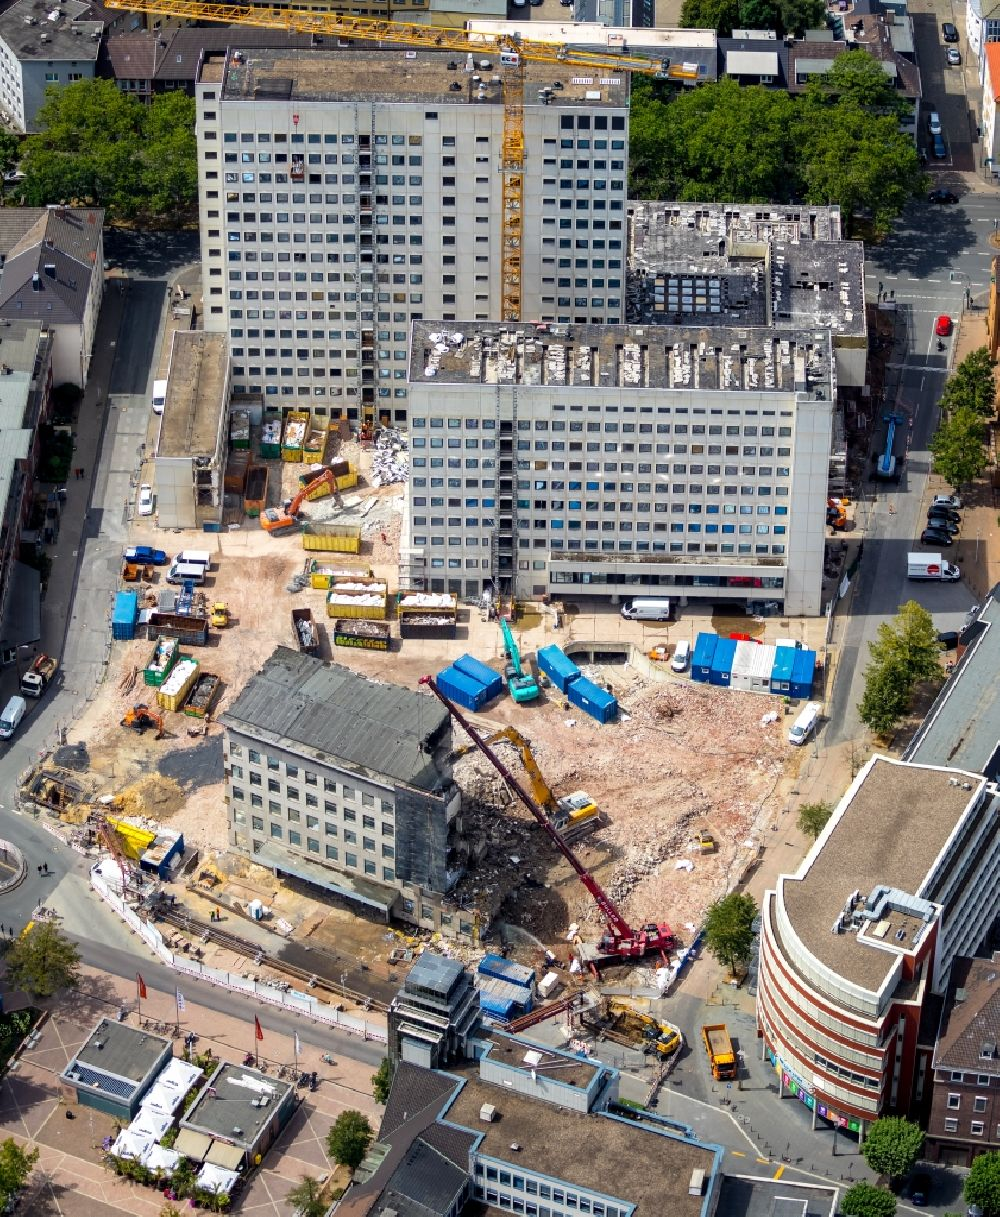 Bochum from the bird's eye view: Demolition area of office buildings Home of old curt Landsgericht - Amtsgericht in the district Innenstadt in Bochum in the state North Rhine-Westphalia, Germany